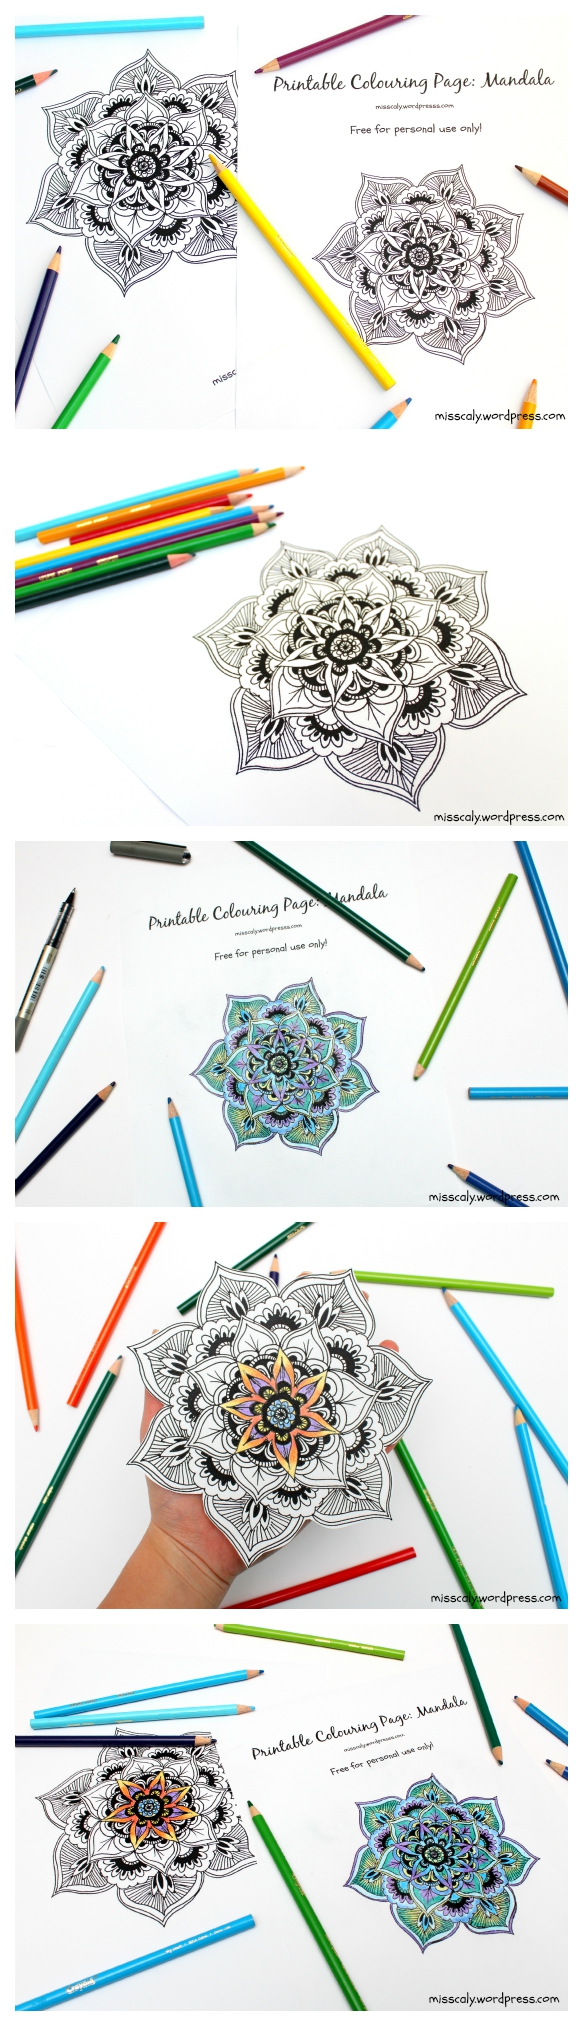 Printable colouring Mandala